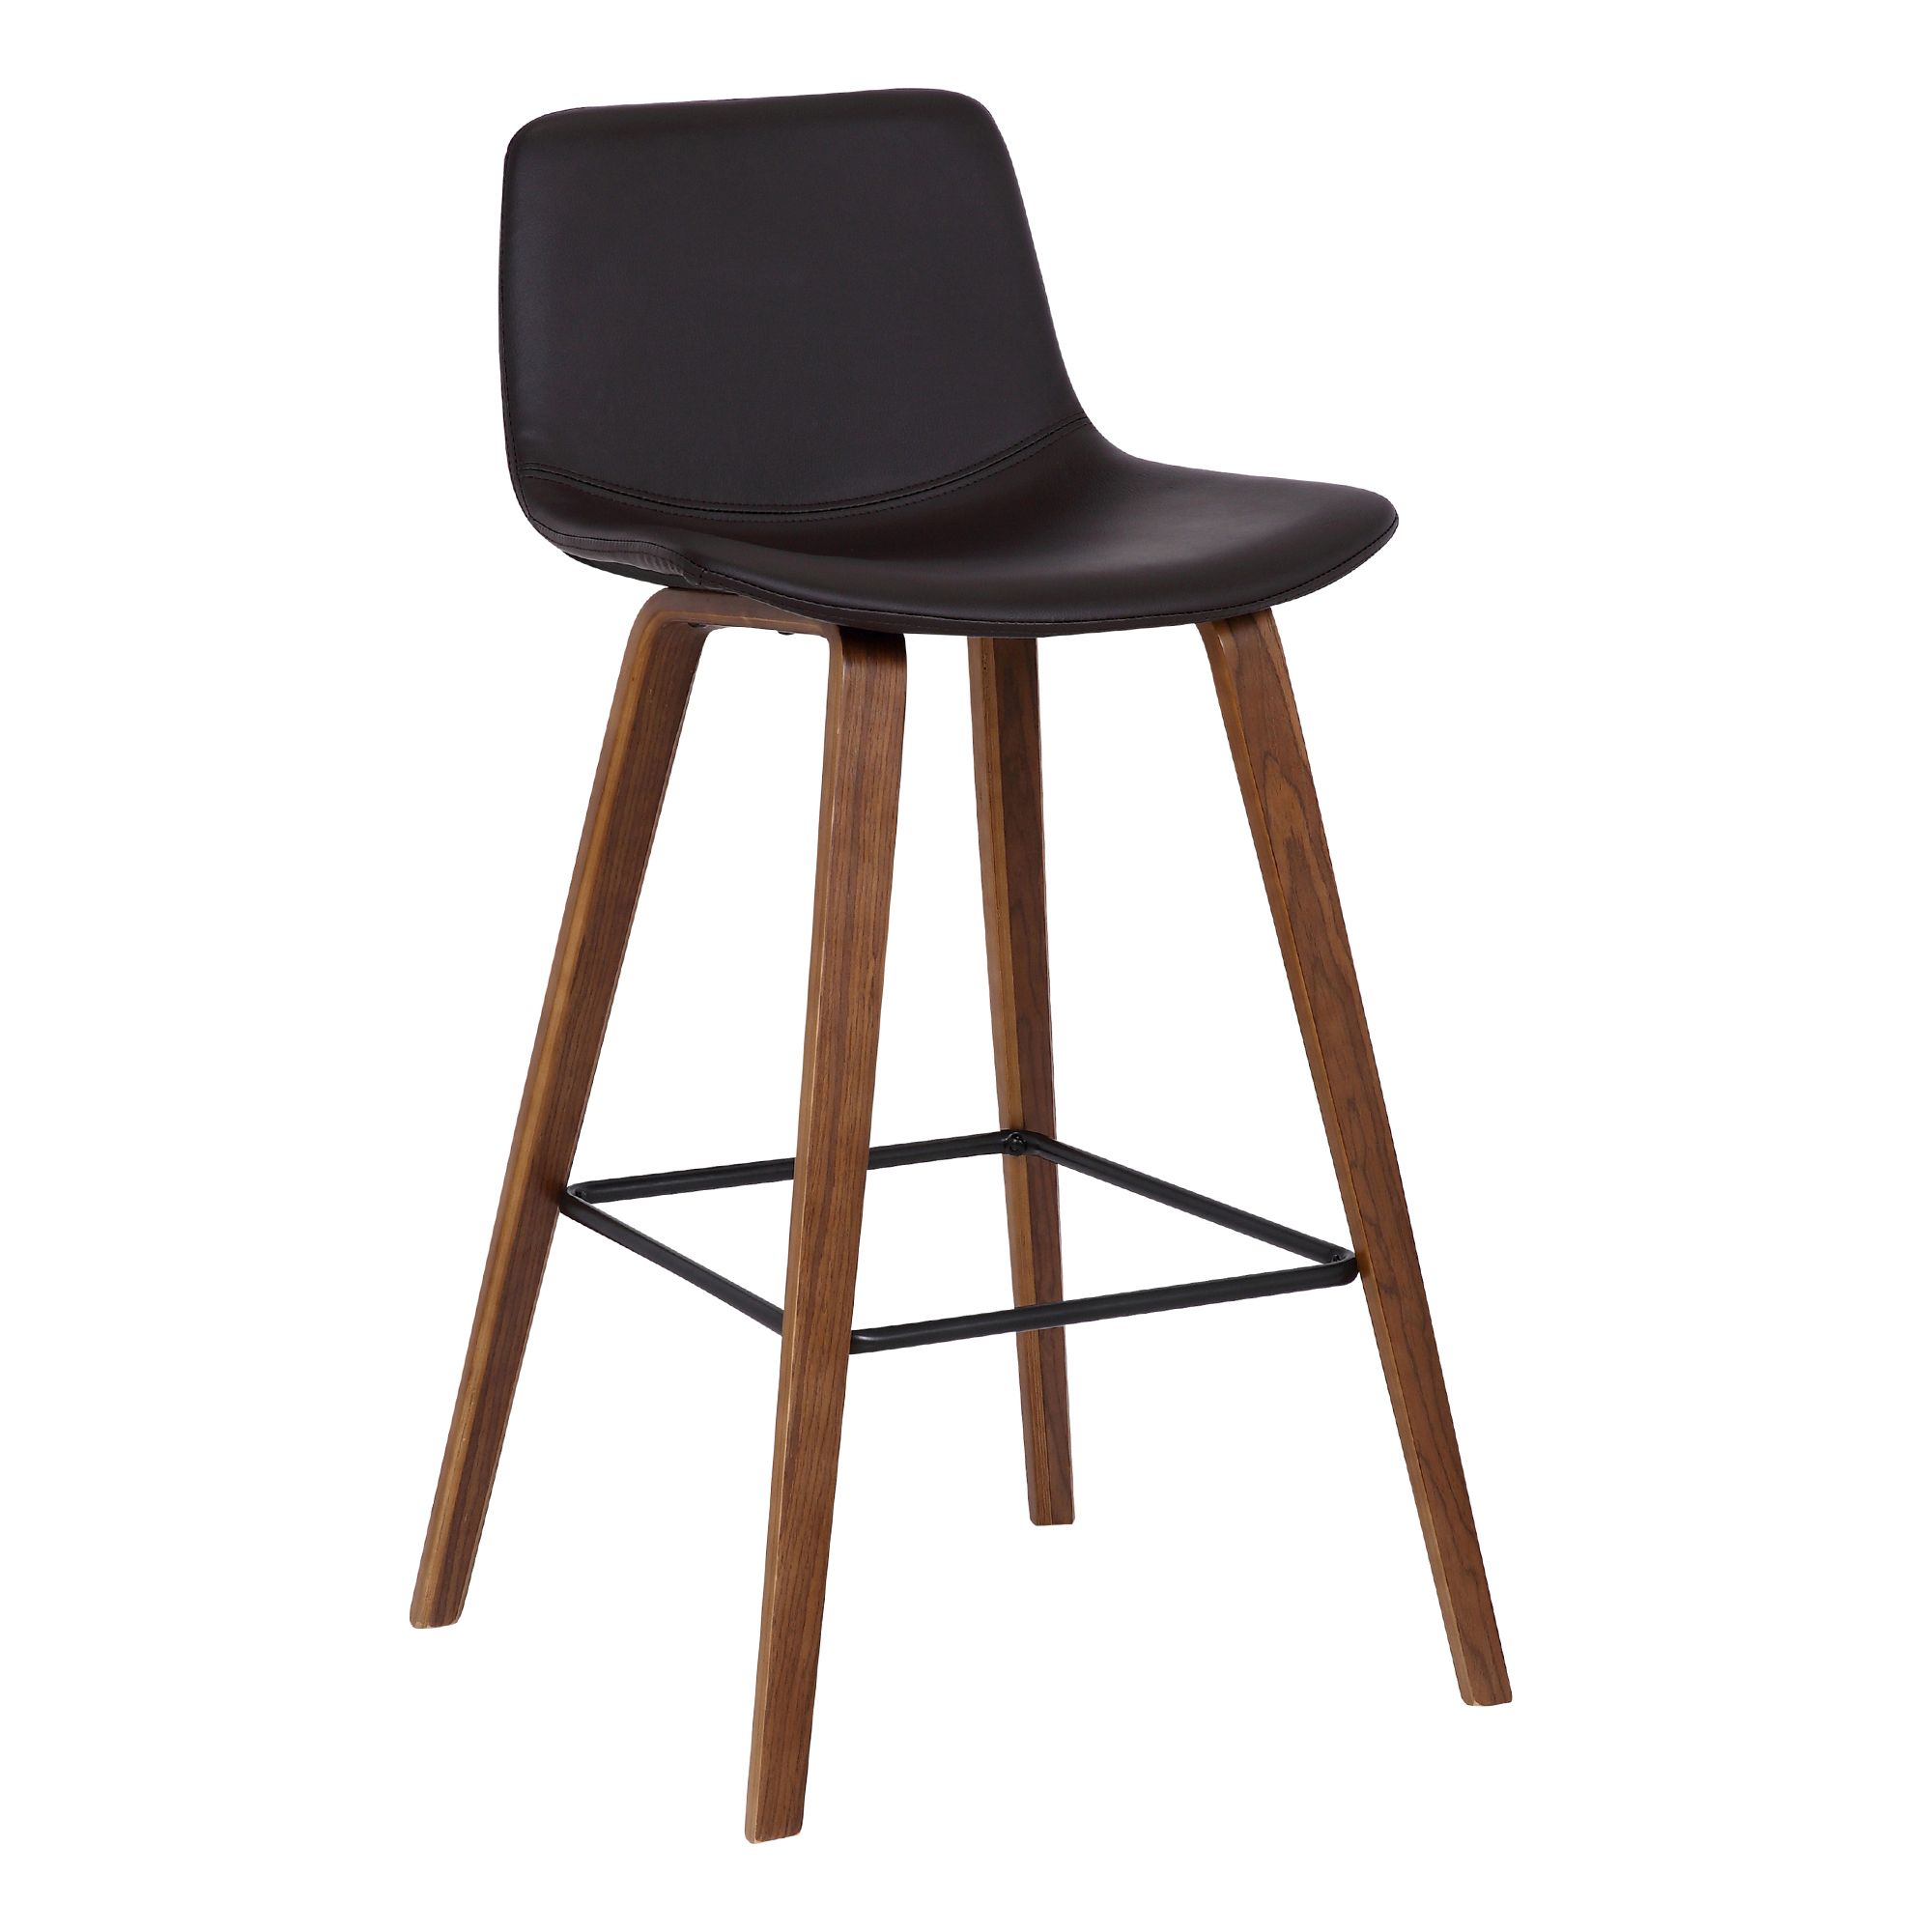 Magnificent Details About Armen Living Maddie 26 Contemporary Counter Height Bar Stool In Walnut Wood Fin Lamtechconsult Wood Chair Design Ideas Lamtechconsultcom